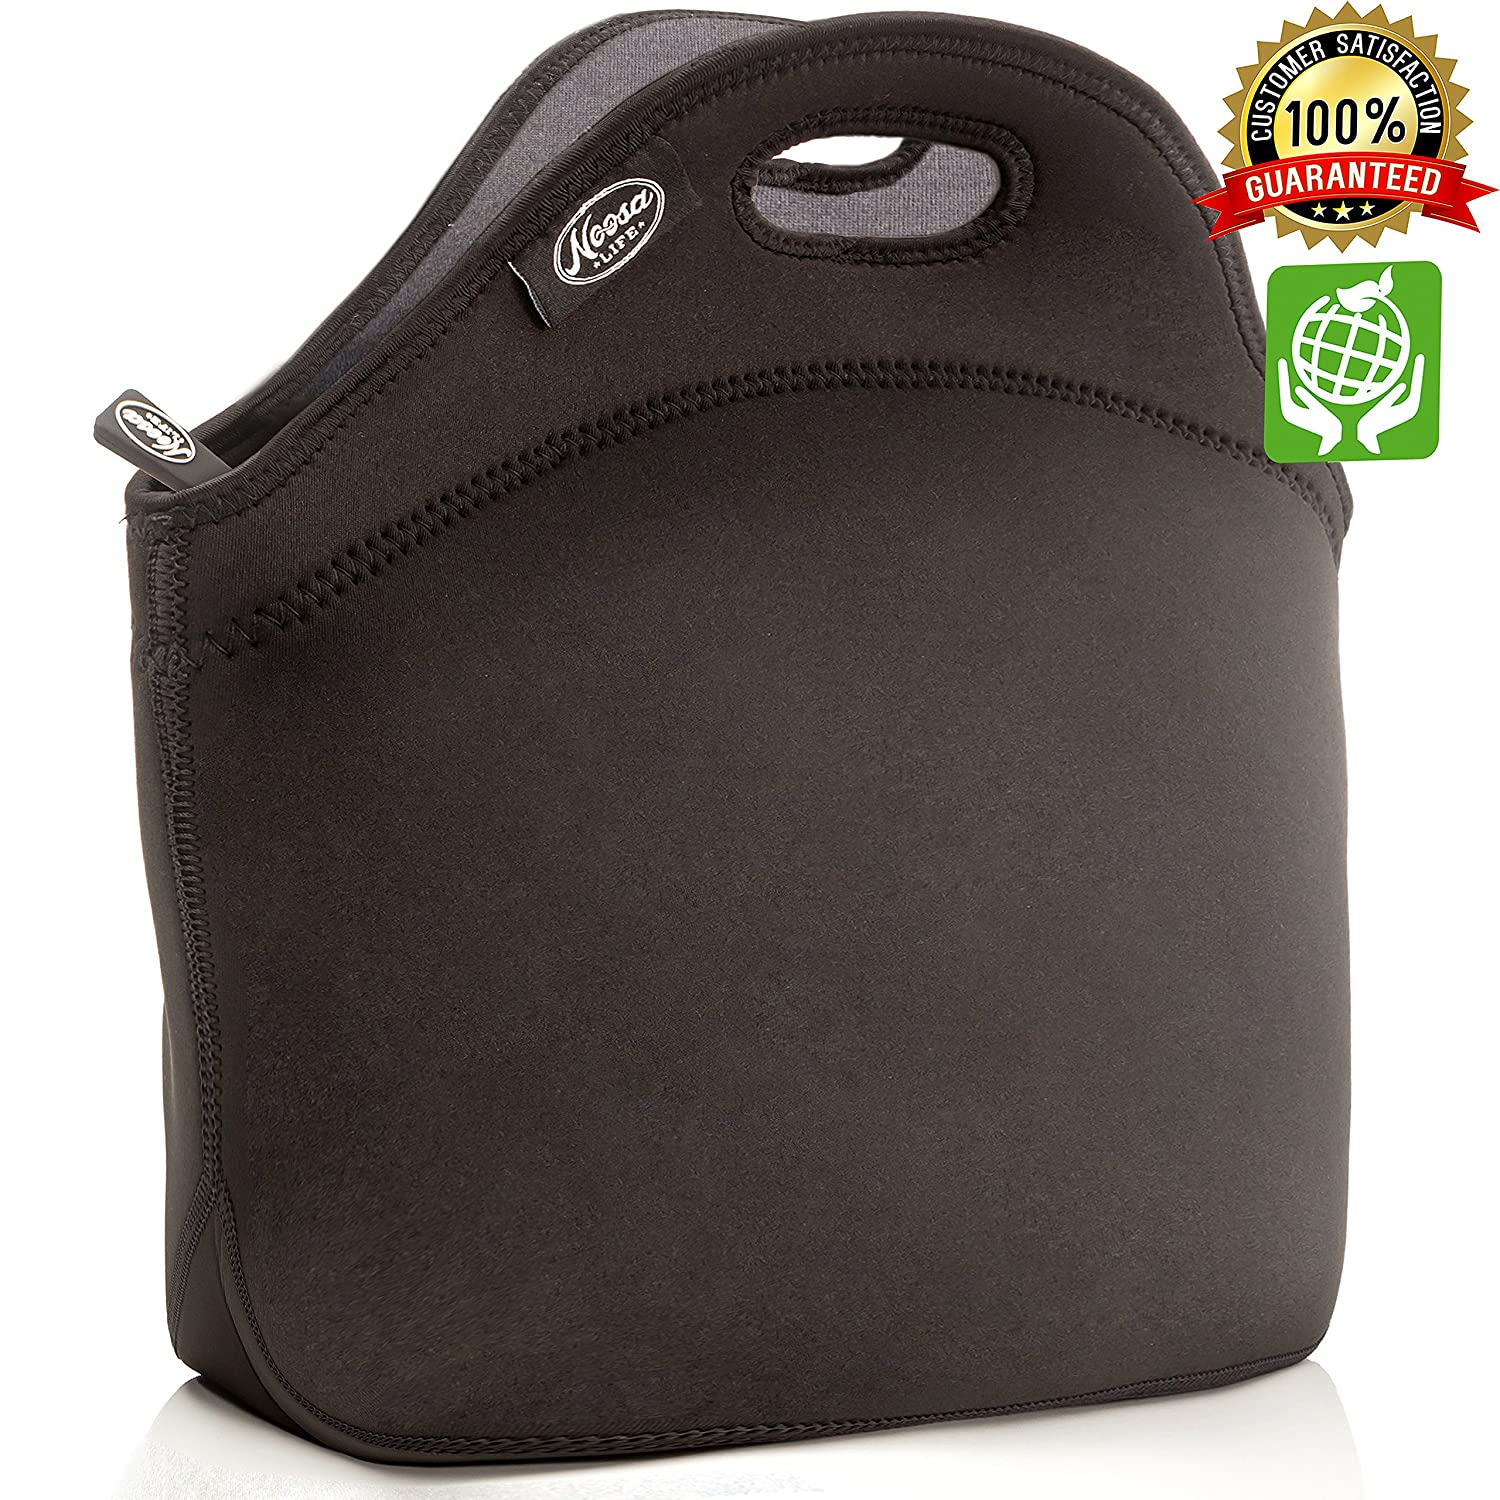 LARGE Neoprene Lunch Bag - Large & Thick Insulated Neoprene Tote